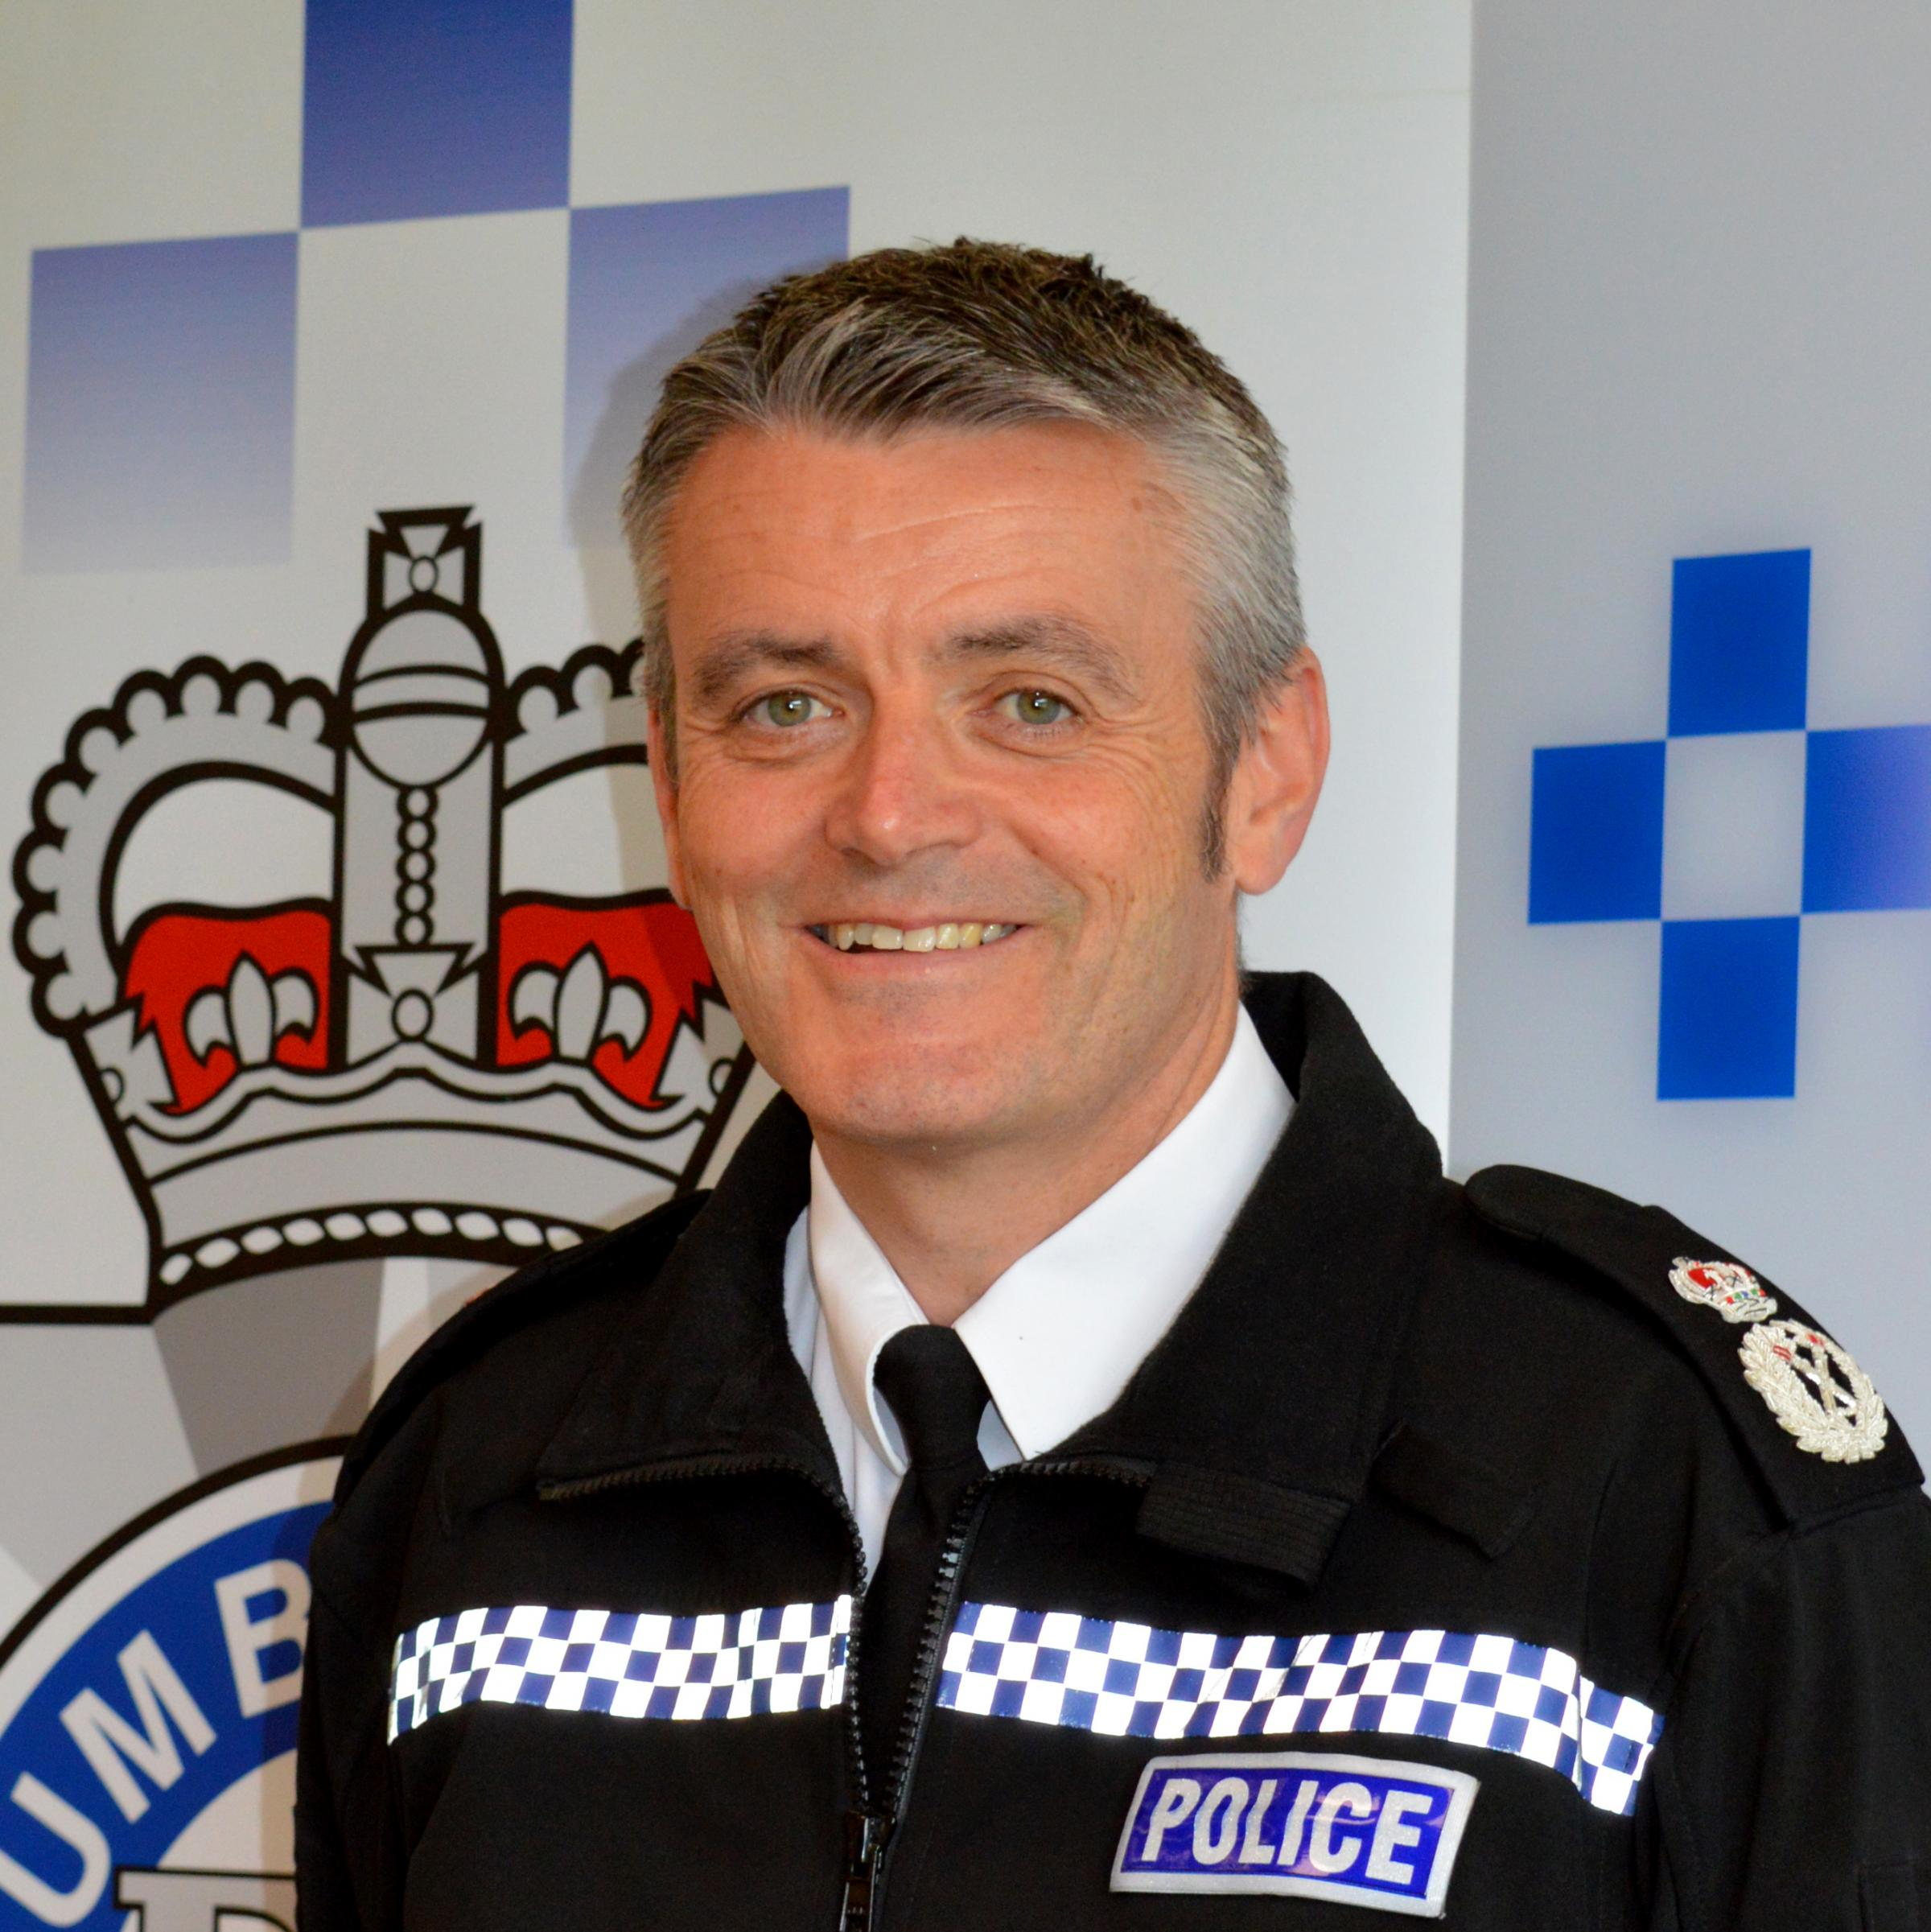 The new Humberside Police chief constable Lee Freeman